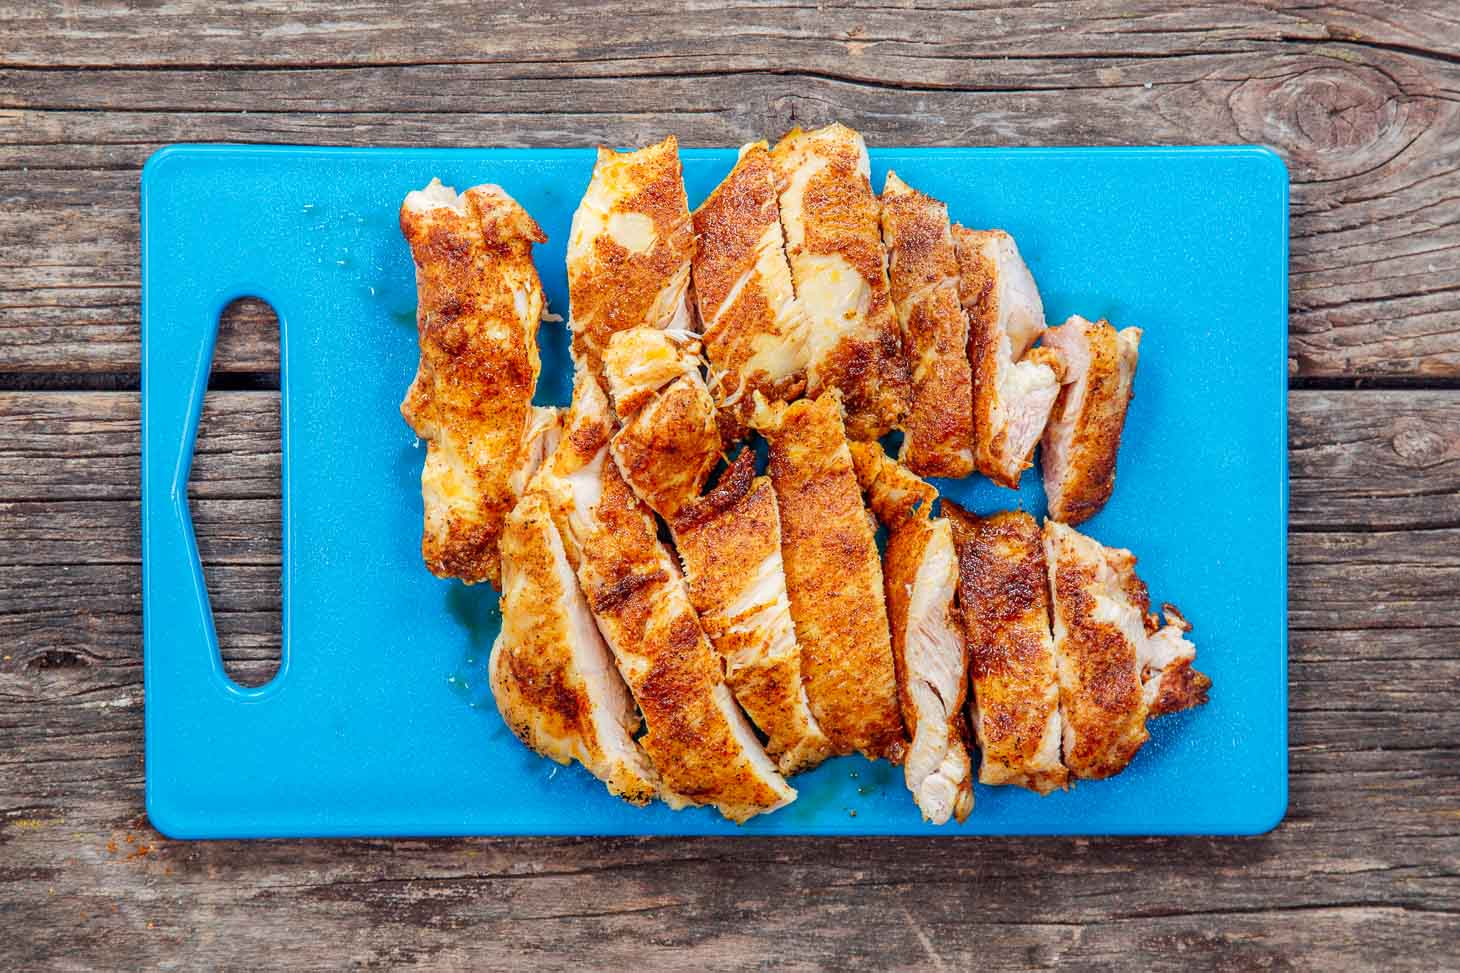 Moroccan spiced chicken on a cutting board